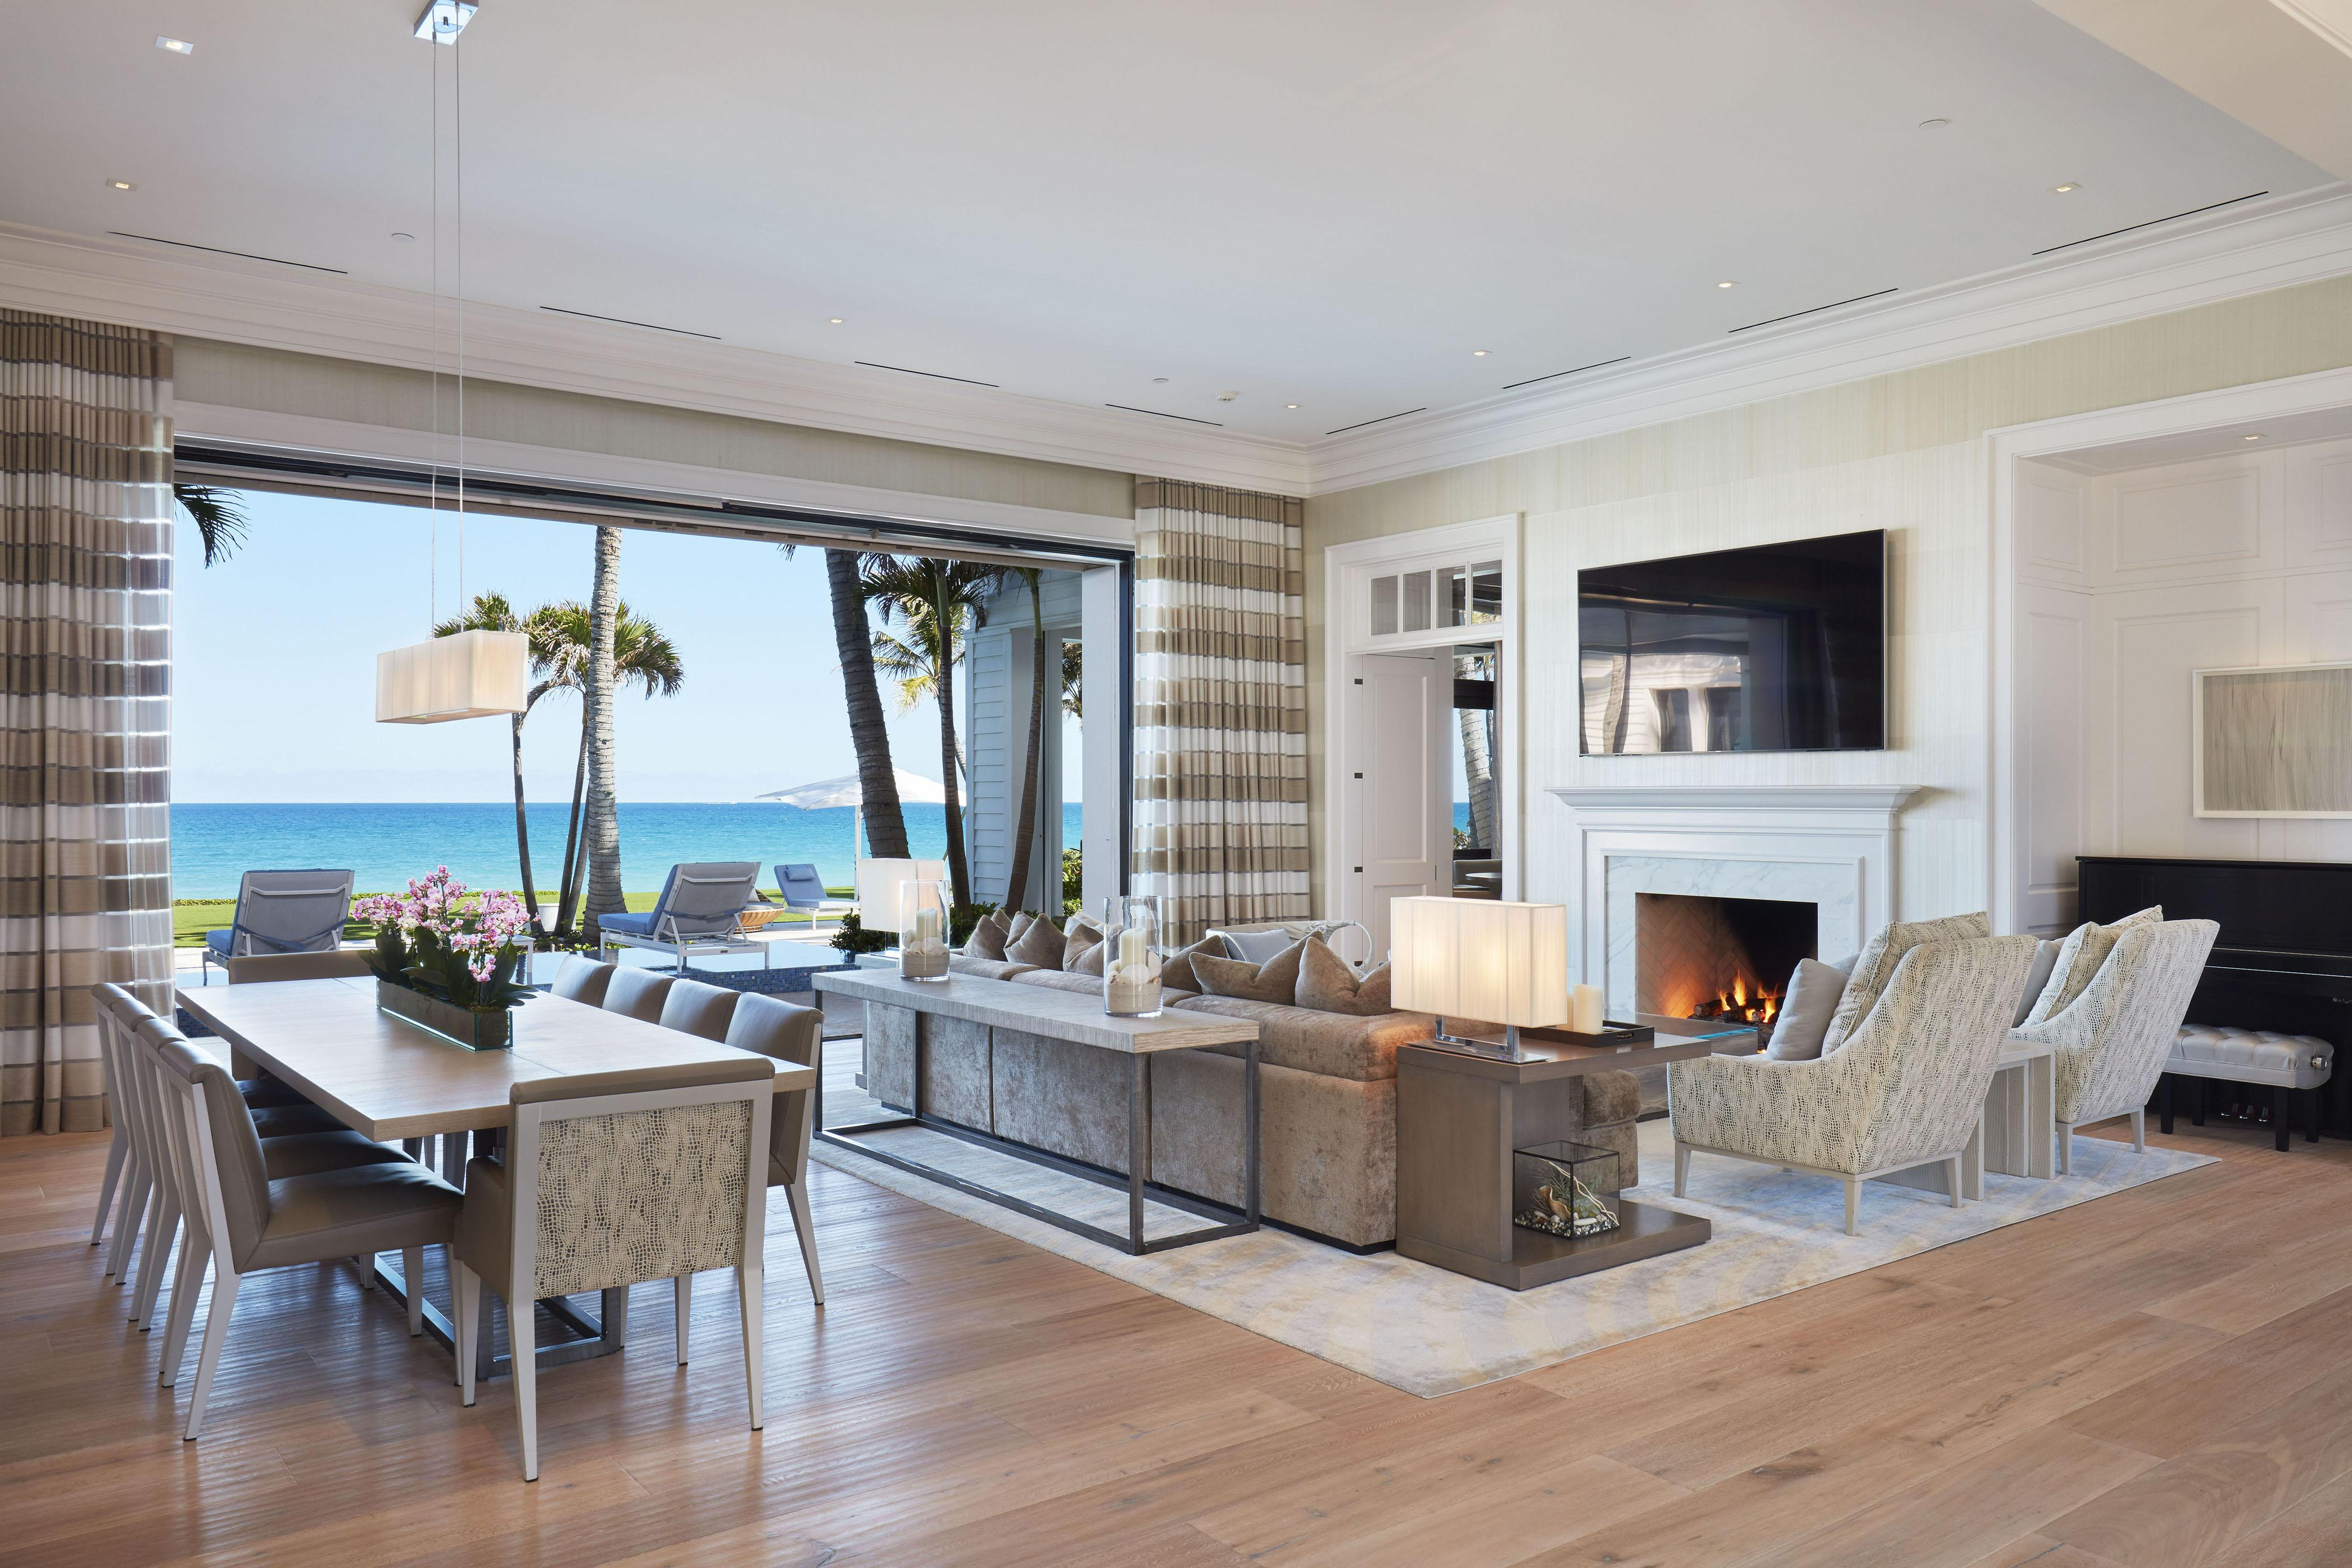 Gorgeous living room has plenty of space to sit down with a TV and fireplace in-built in the wall